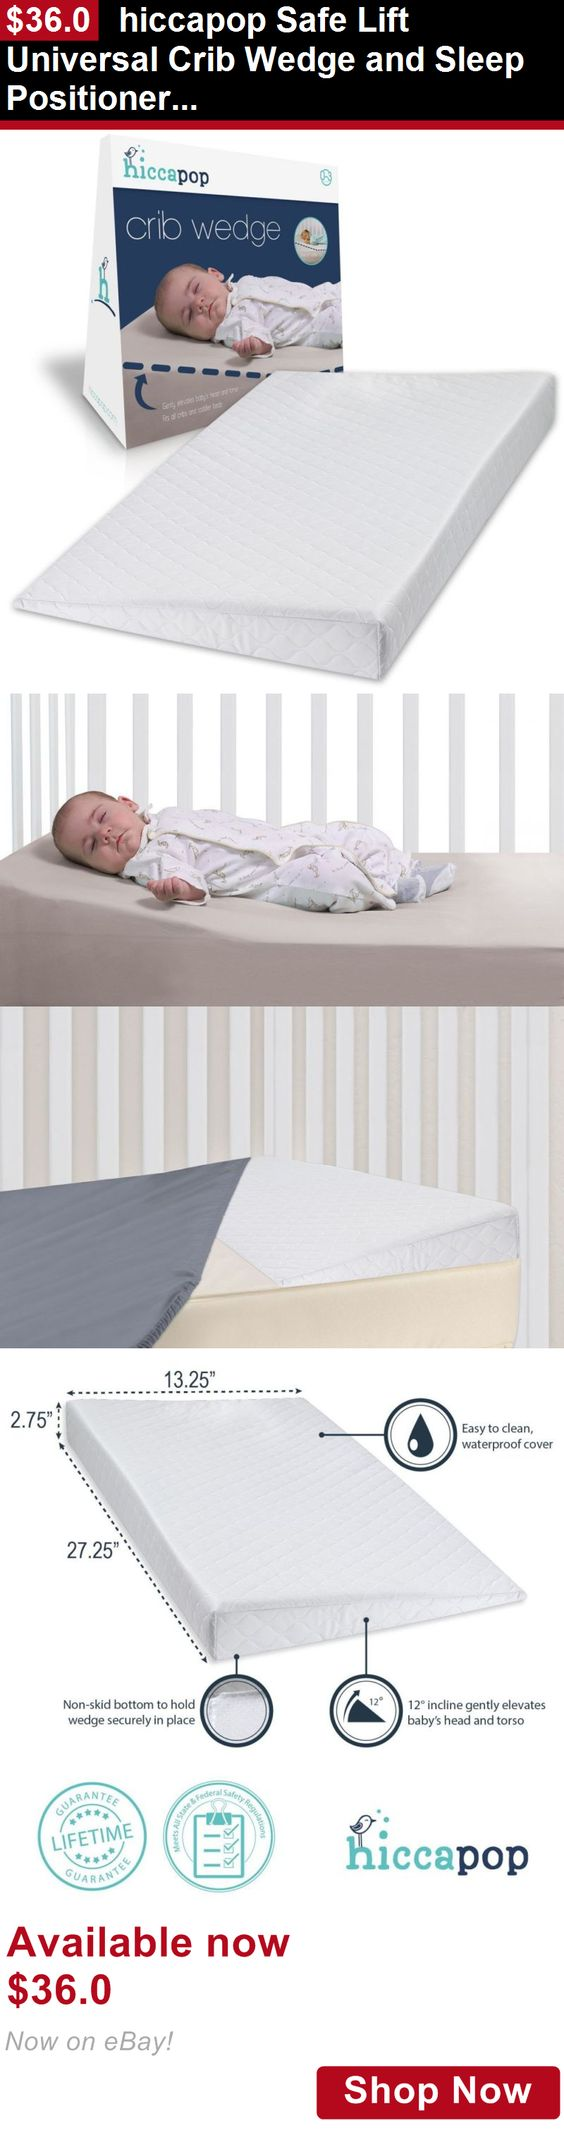 Crib wedges for babies - Baby Safety Sleep Positioners Hiccapop Safe Lift Universal Crib Wedge And Sleep Positioner For Baby